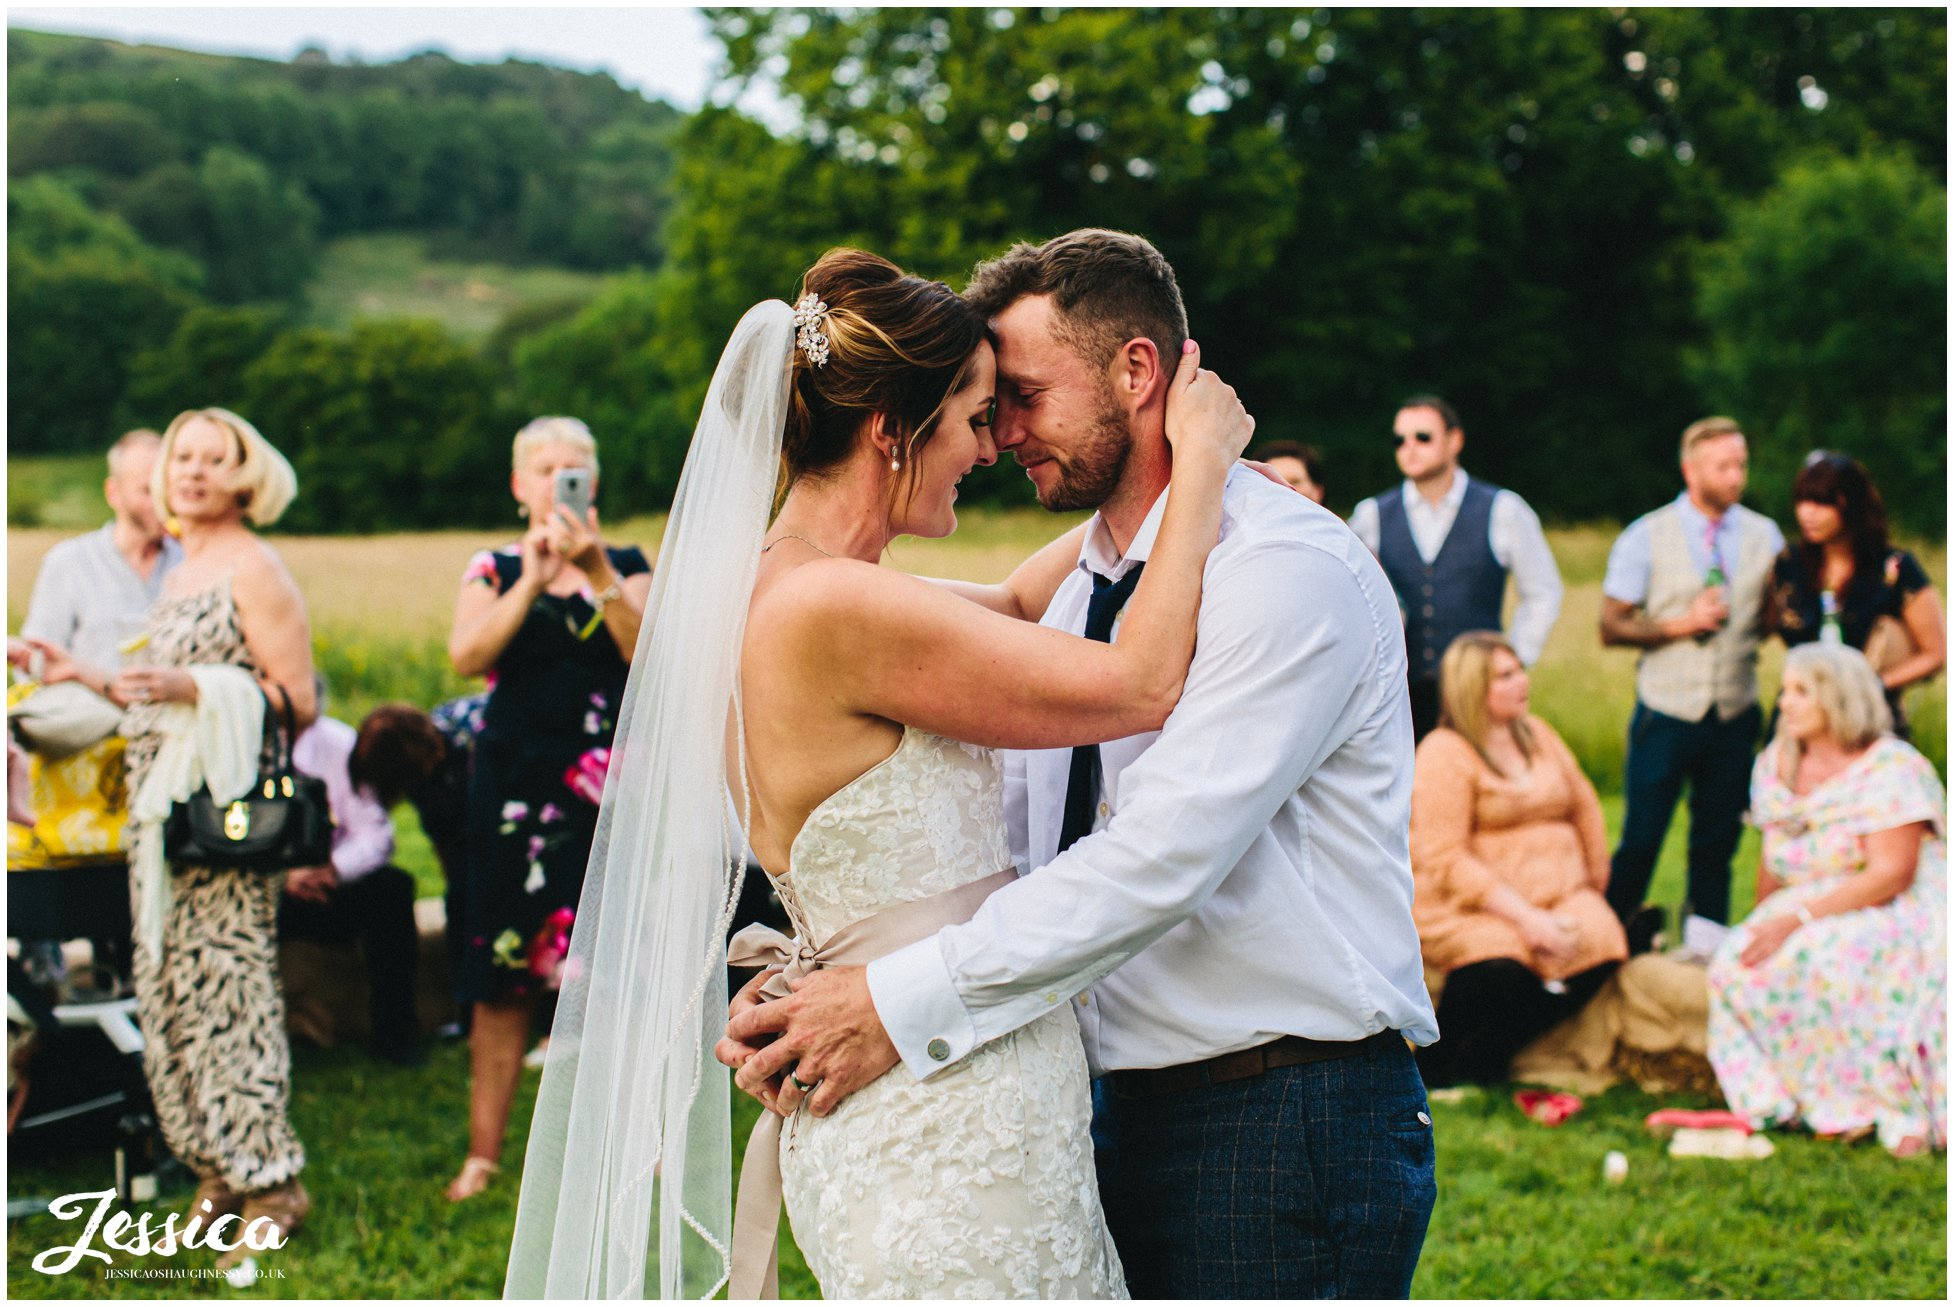 bride & groom have first dance outside surrounded by guests